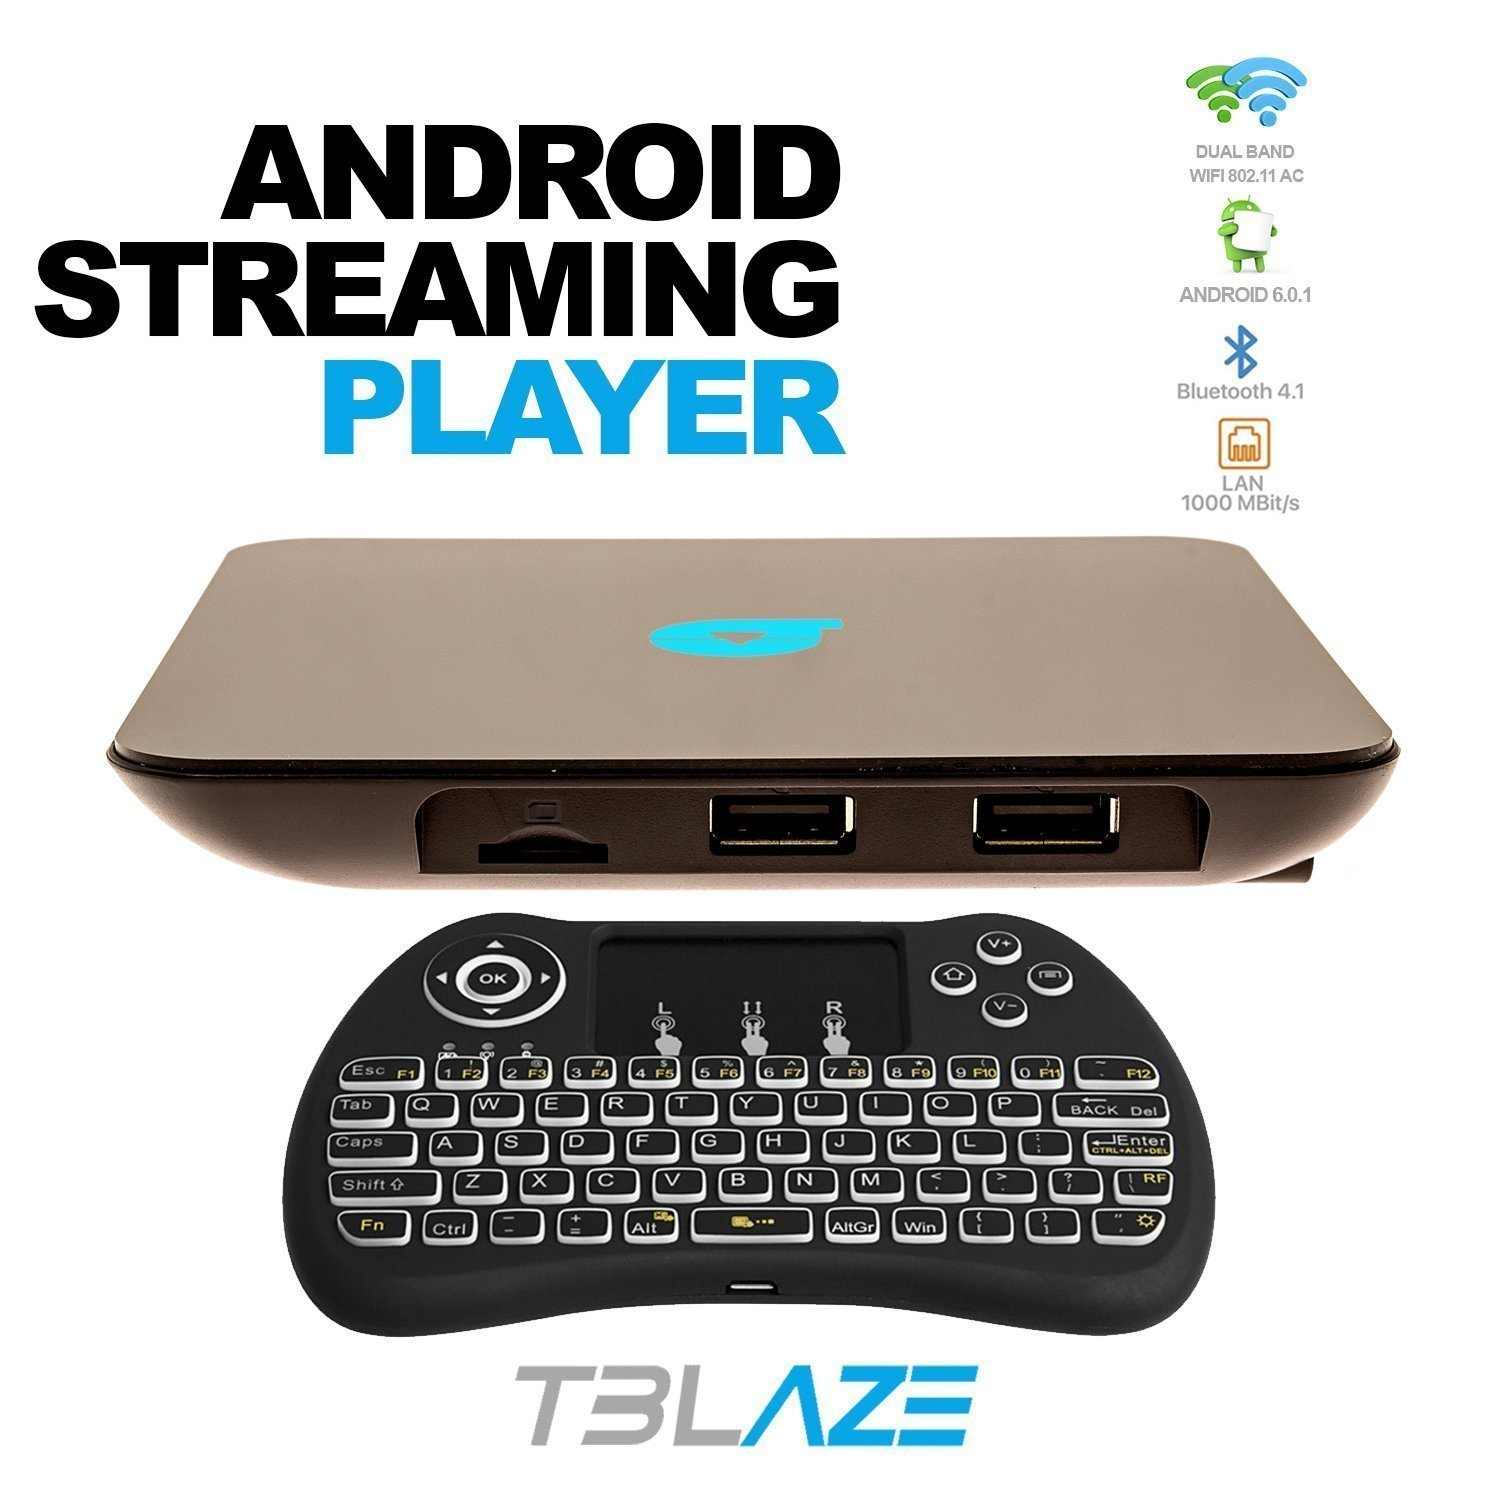 Tblaze Android TV Box Amlogic S912 Octa-core CPU 64-Bit 4K/3D/2GB/16GB AC Wireless Dual Band WiFi 2.4GHz/5GHz Ready To Stream Media Center,Keyboard Remote,Updated Version Realtime Firmware Updates by Tblaze (Image #5)